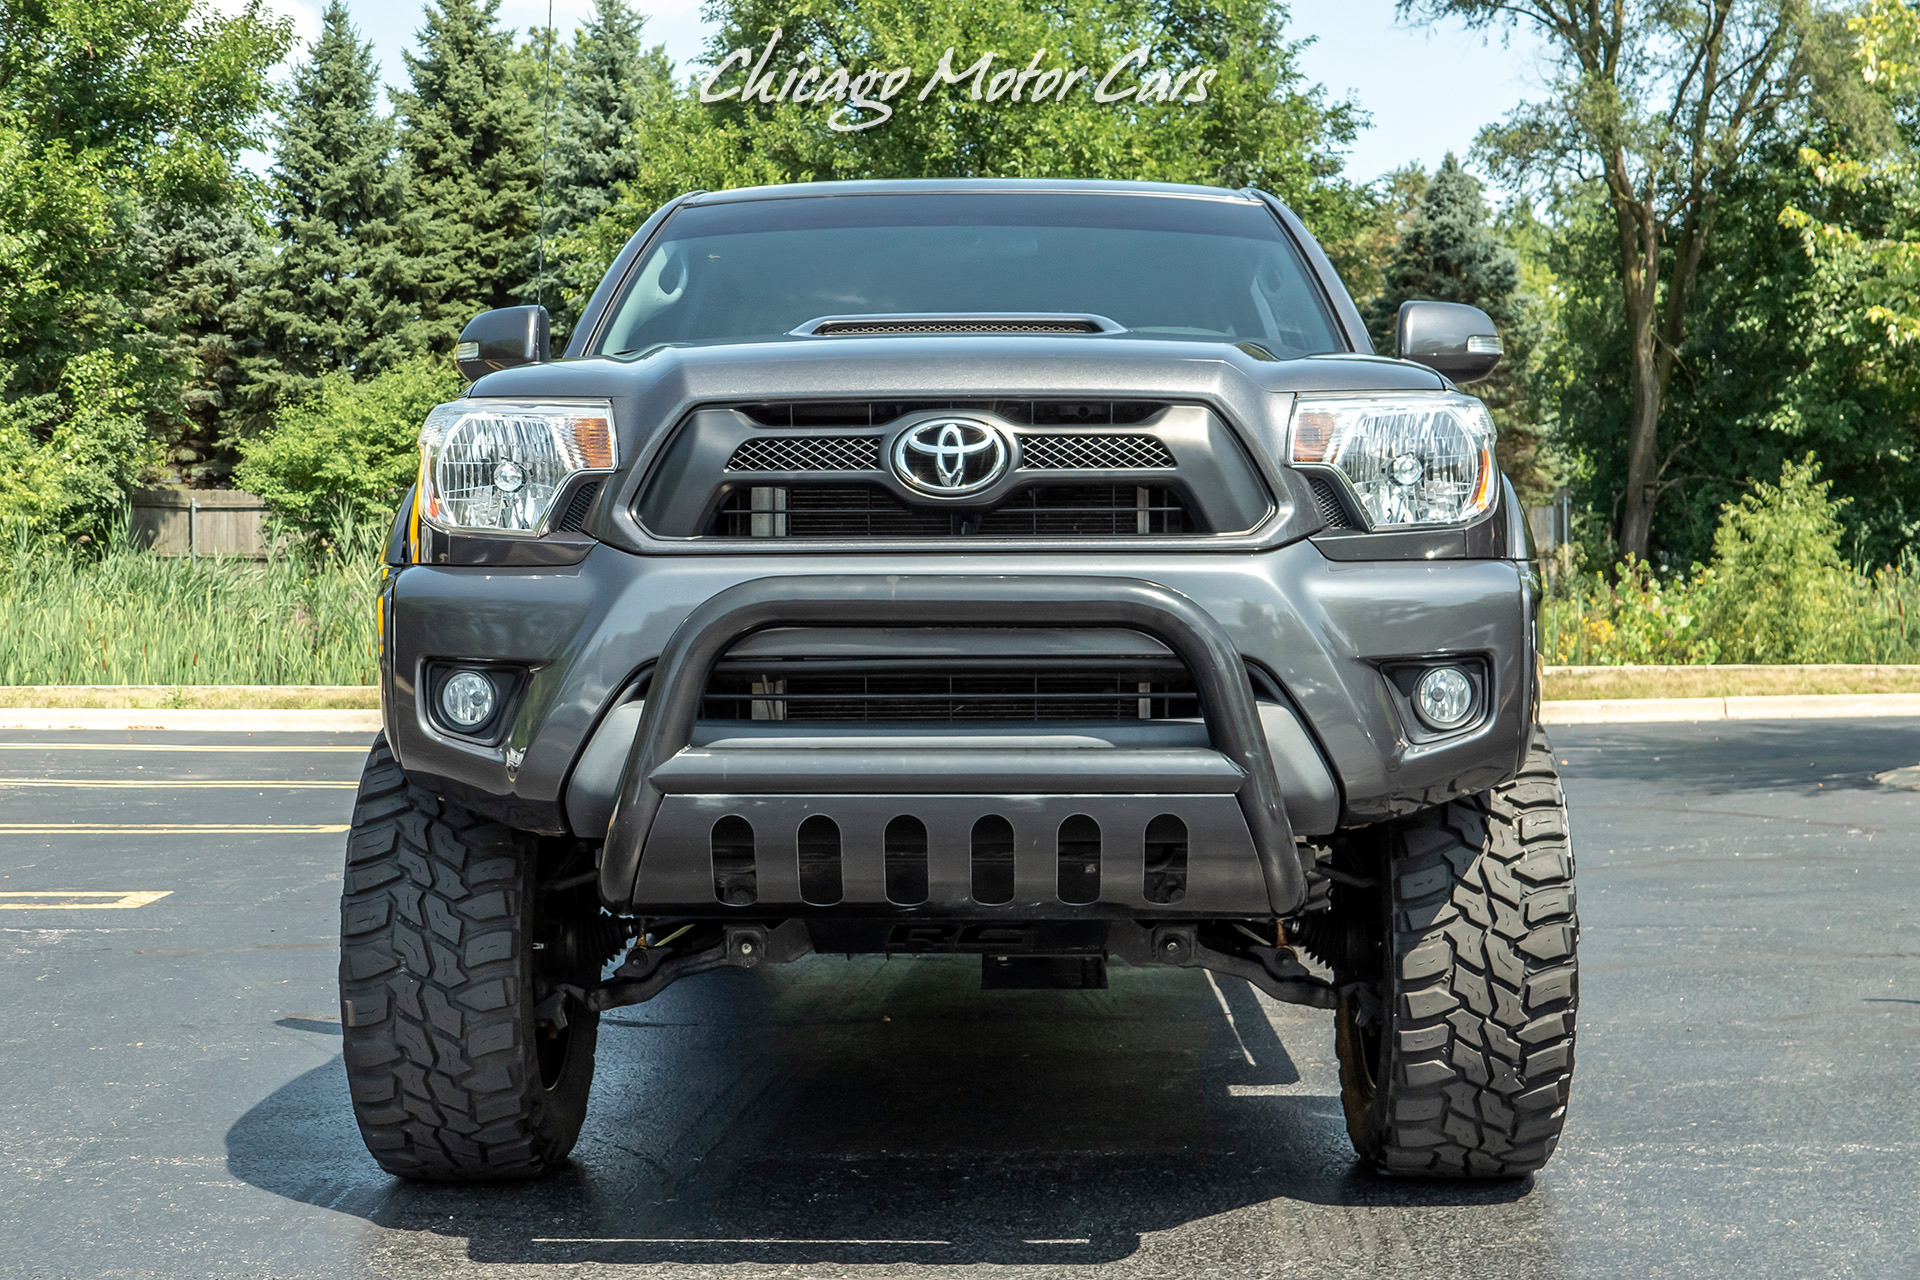 Used-2015-Toyota-Tacoma-Pickup-Truck-TRD-SPORT-PACKAGE-UPGRADES